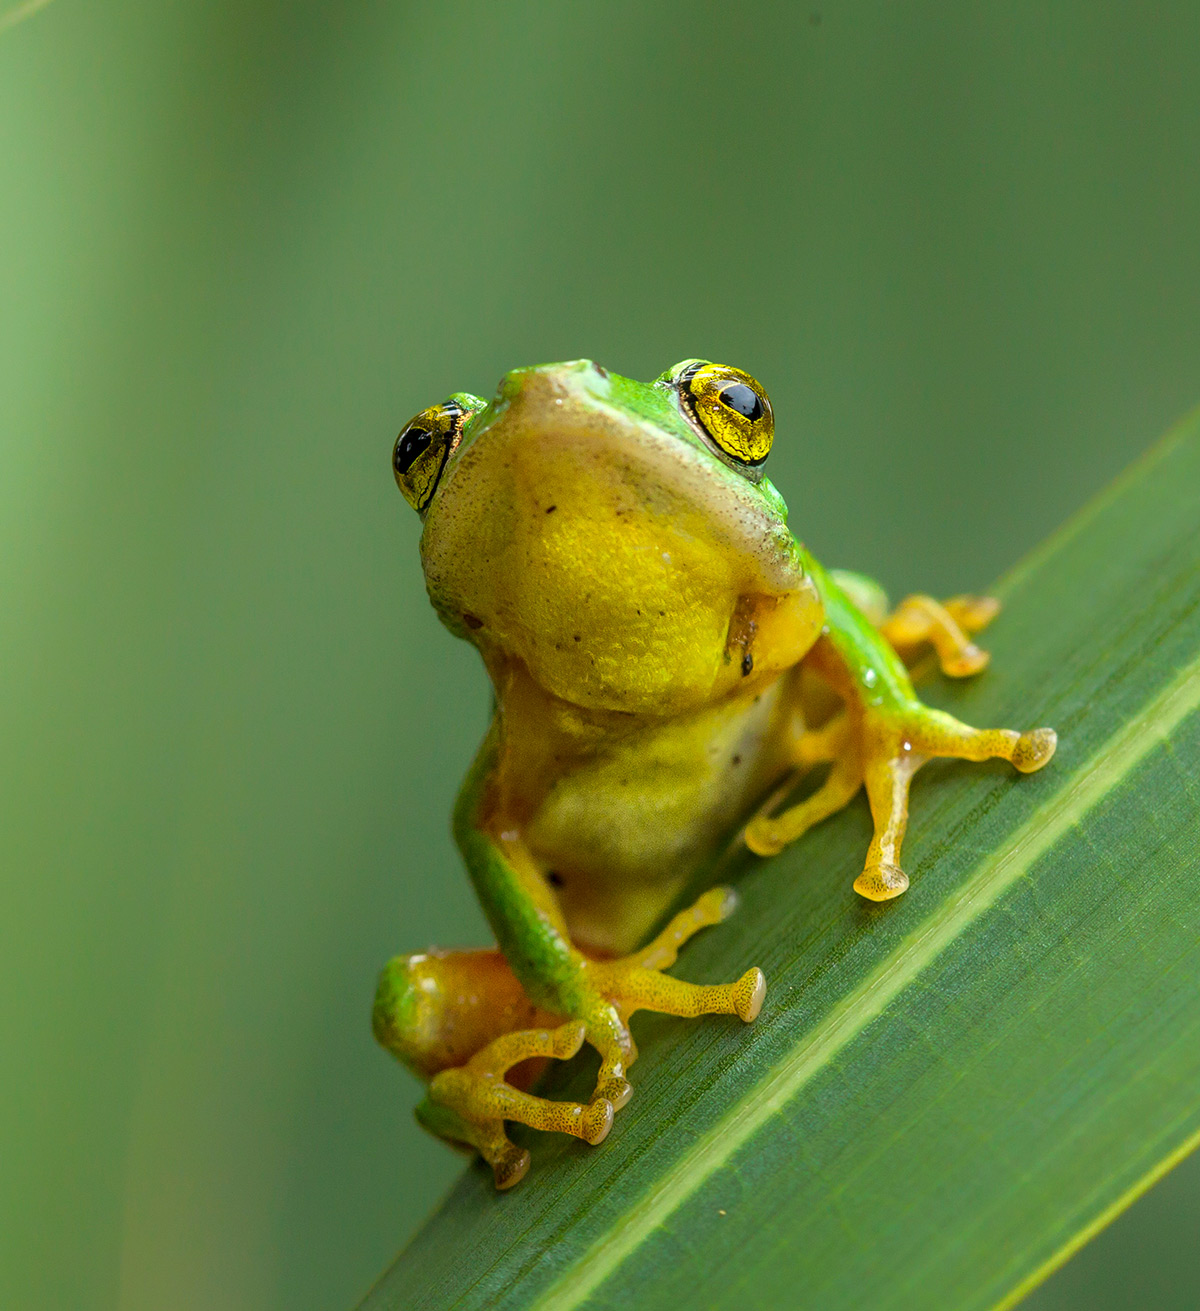 A tinker reed frog is discovered while exploring the undergrowth in the Umtamvuna Nature Reserve, South Africa © Ingrid Sellschop